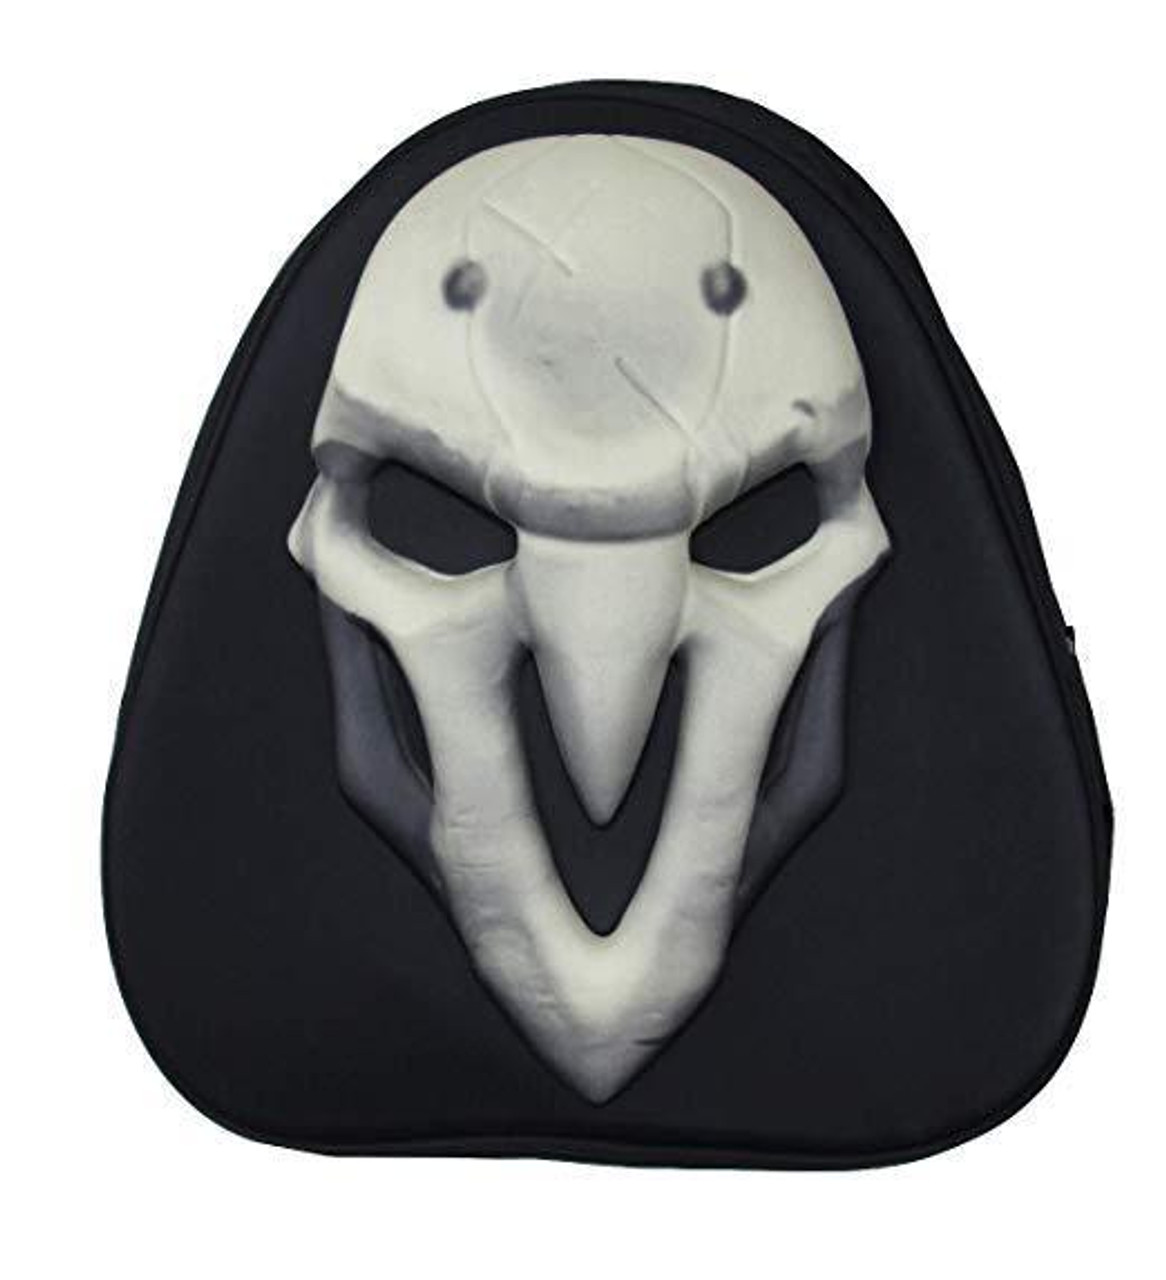 aa2e56b6a6e Loungefly Overwatch Reaper Death Hero 3D Video Games Gothic Backpack  OWBK0004 - Fearless Apparel